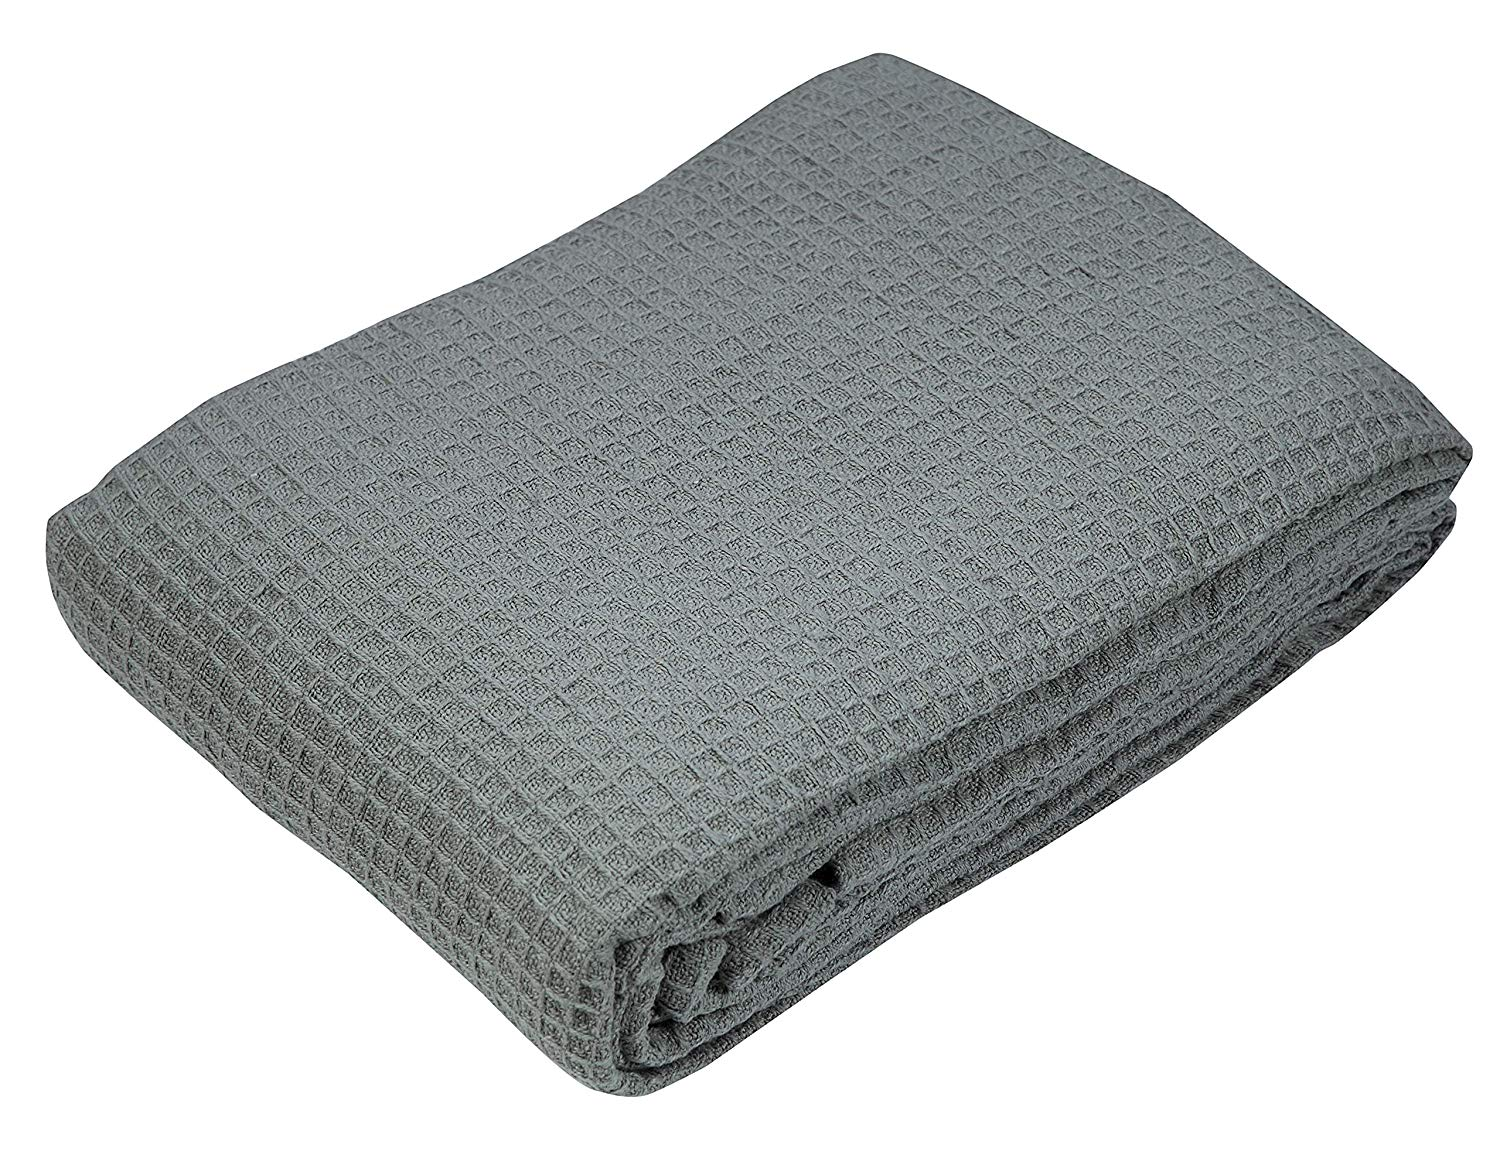 100% Soft Premium Cotton Thermal Blanket in Waffle Weave- Twin 60x90 Charcoal - Snuggle in These Super Soft,Breathable Cozy Cotton Blankets - Perfect for Layering Any Bed - Provides Comfort